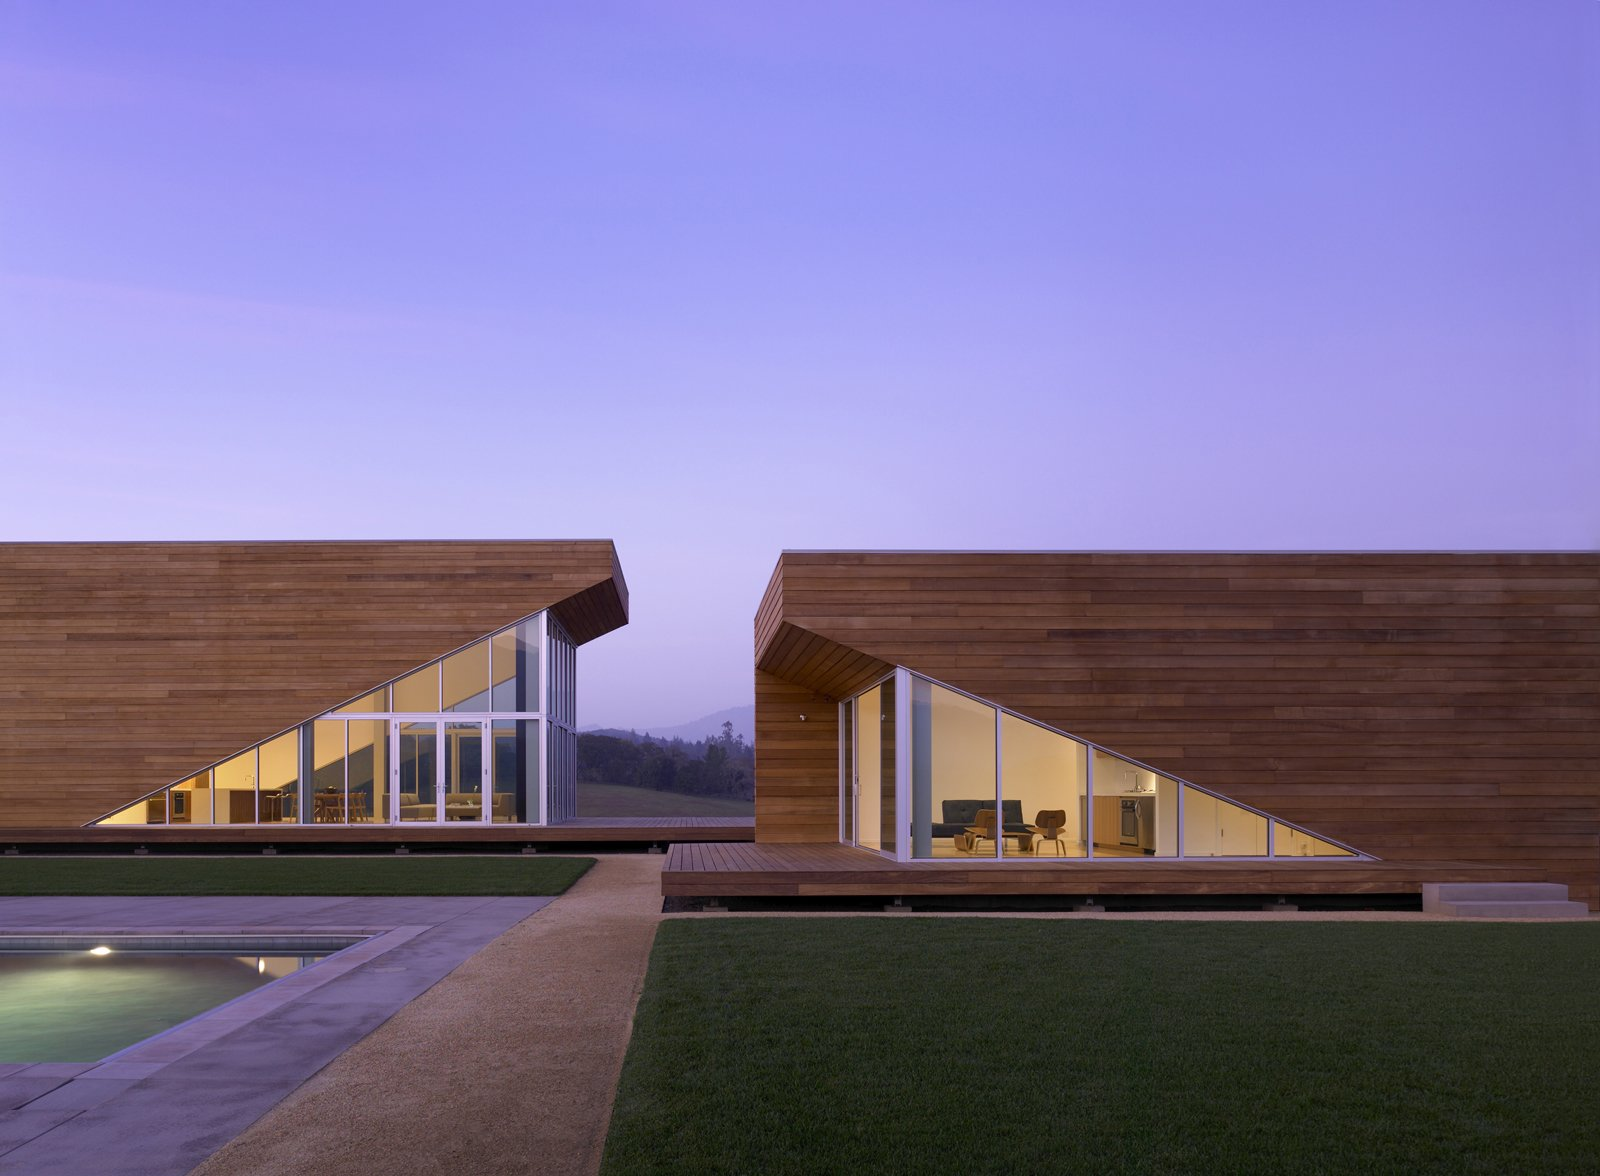 Summerhill House  Location: Kenwood, California  Architect: Edmonds + Lee Architects  Photo 6 of 22 in Young Guns: Best New Practices 2009